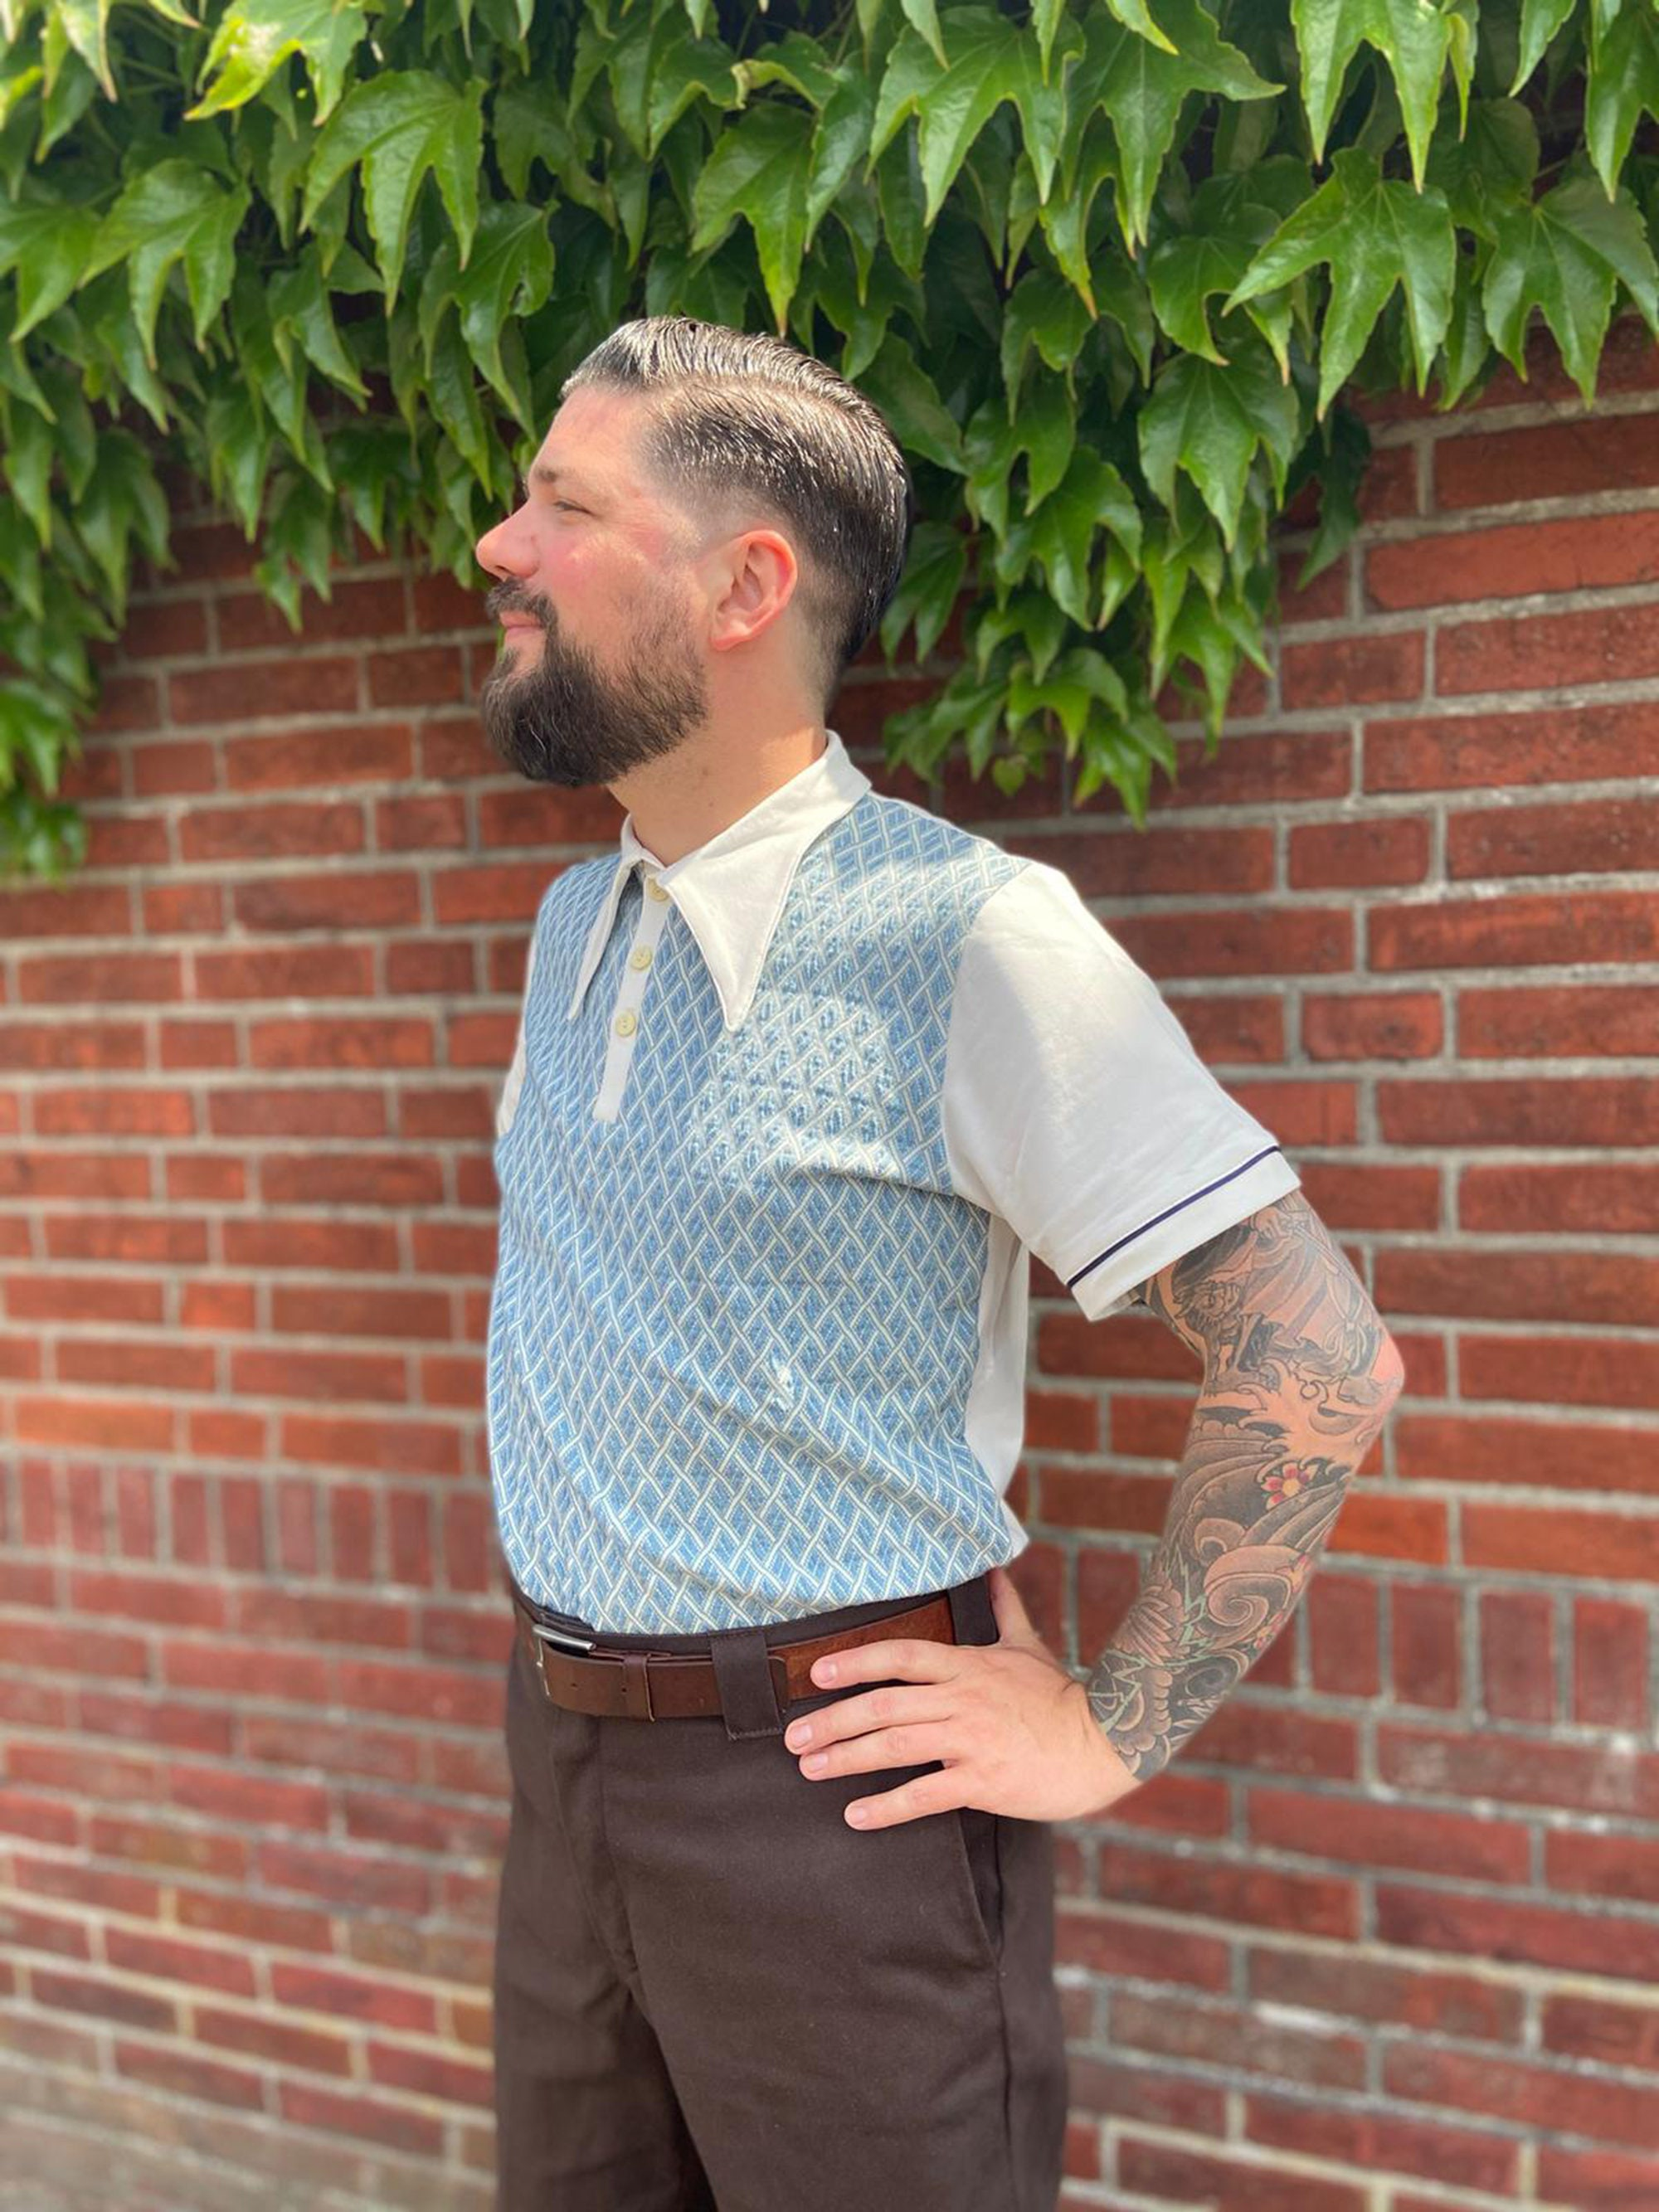 1940s Men's Shirts, Sweaters, Vests Polo Shirt Light Blue Retro Style, Spear Point Collar Polo Shirt, Vintage Style Checkered Polo, 30s, 40s, Mens Lindy Hop Clothing $114.49 AT vintagedancer.com